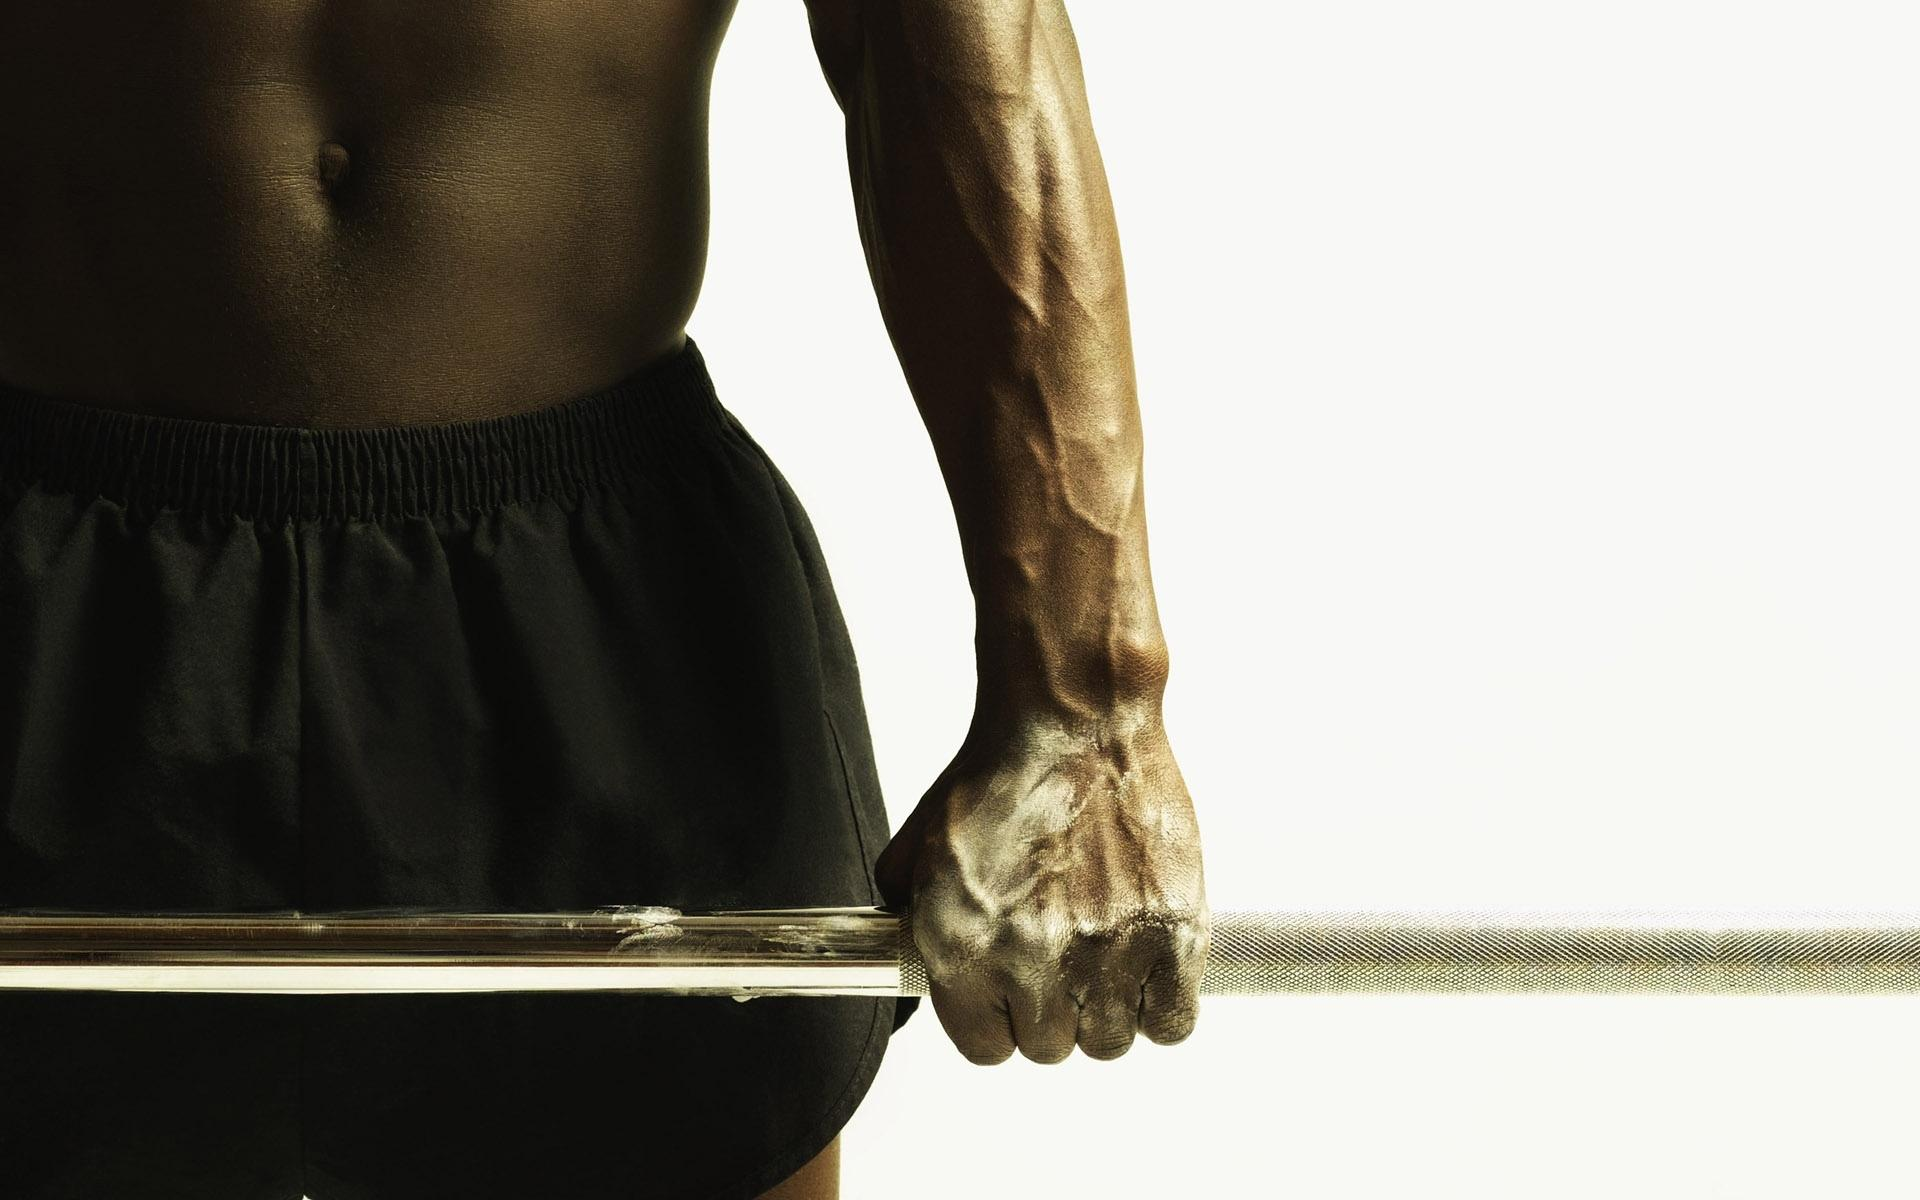 Weightlifting Wallpaper HD Download